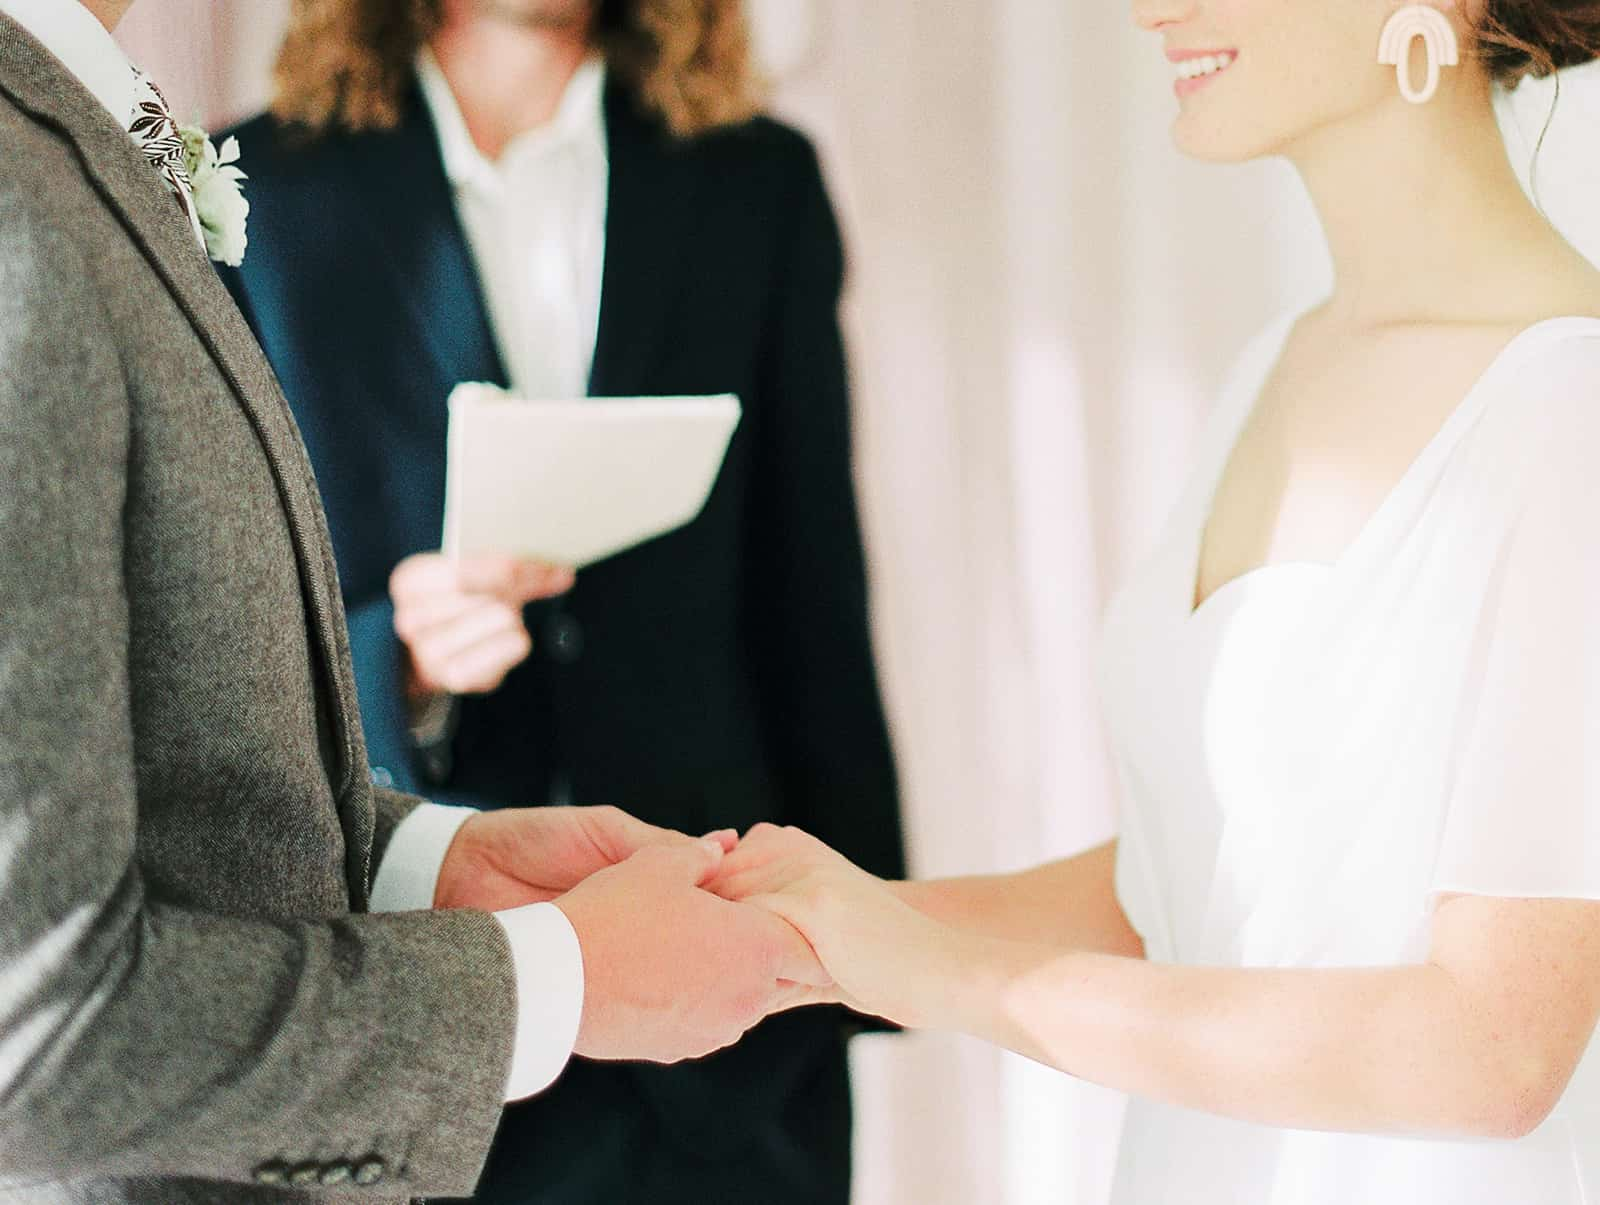 Bride and groom hold hands during small wedding ceremony